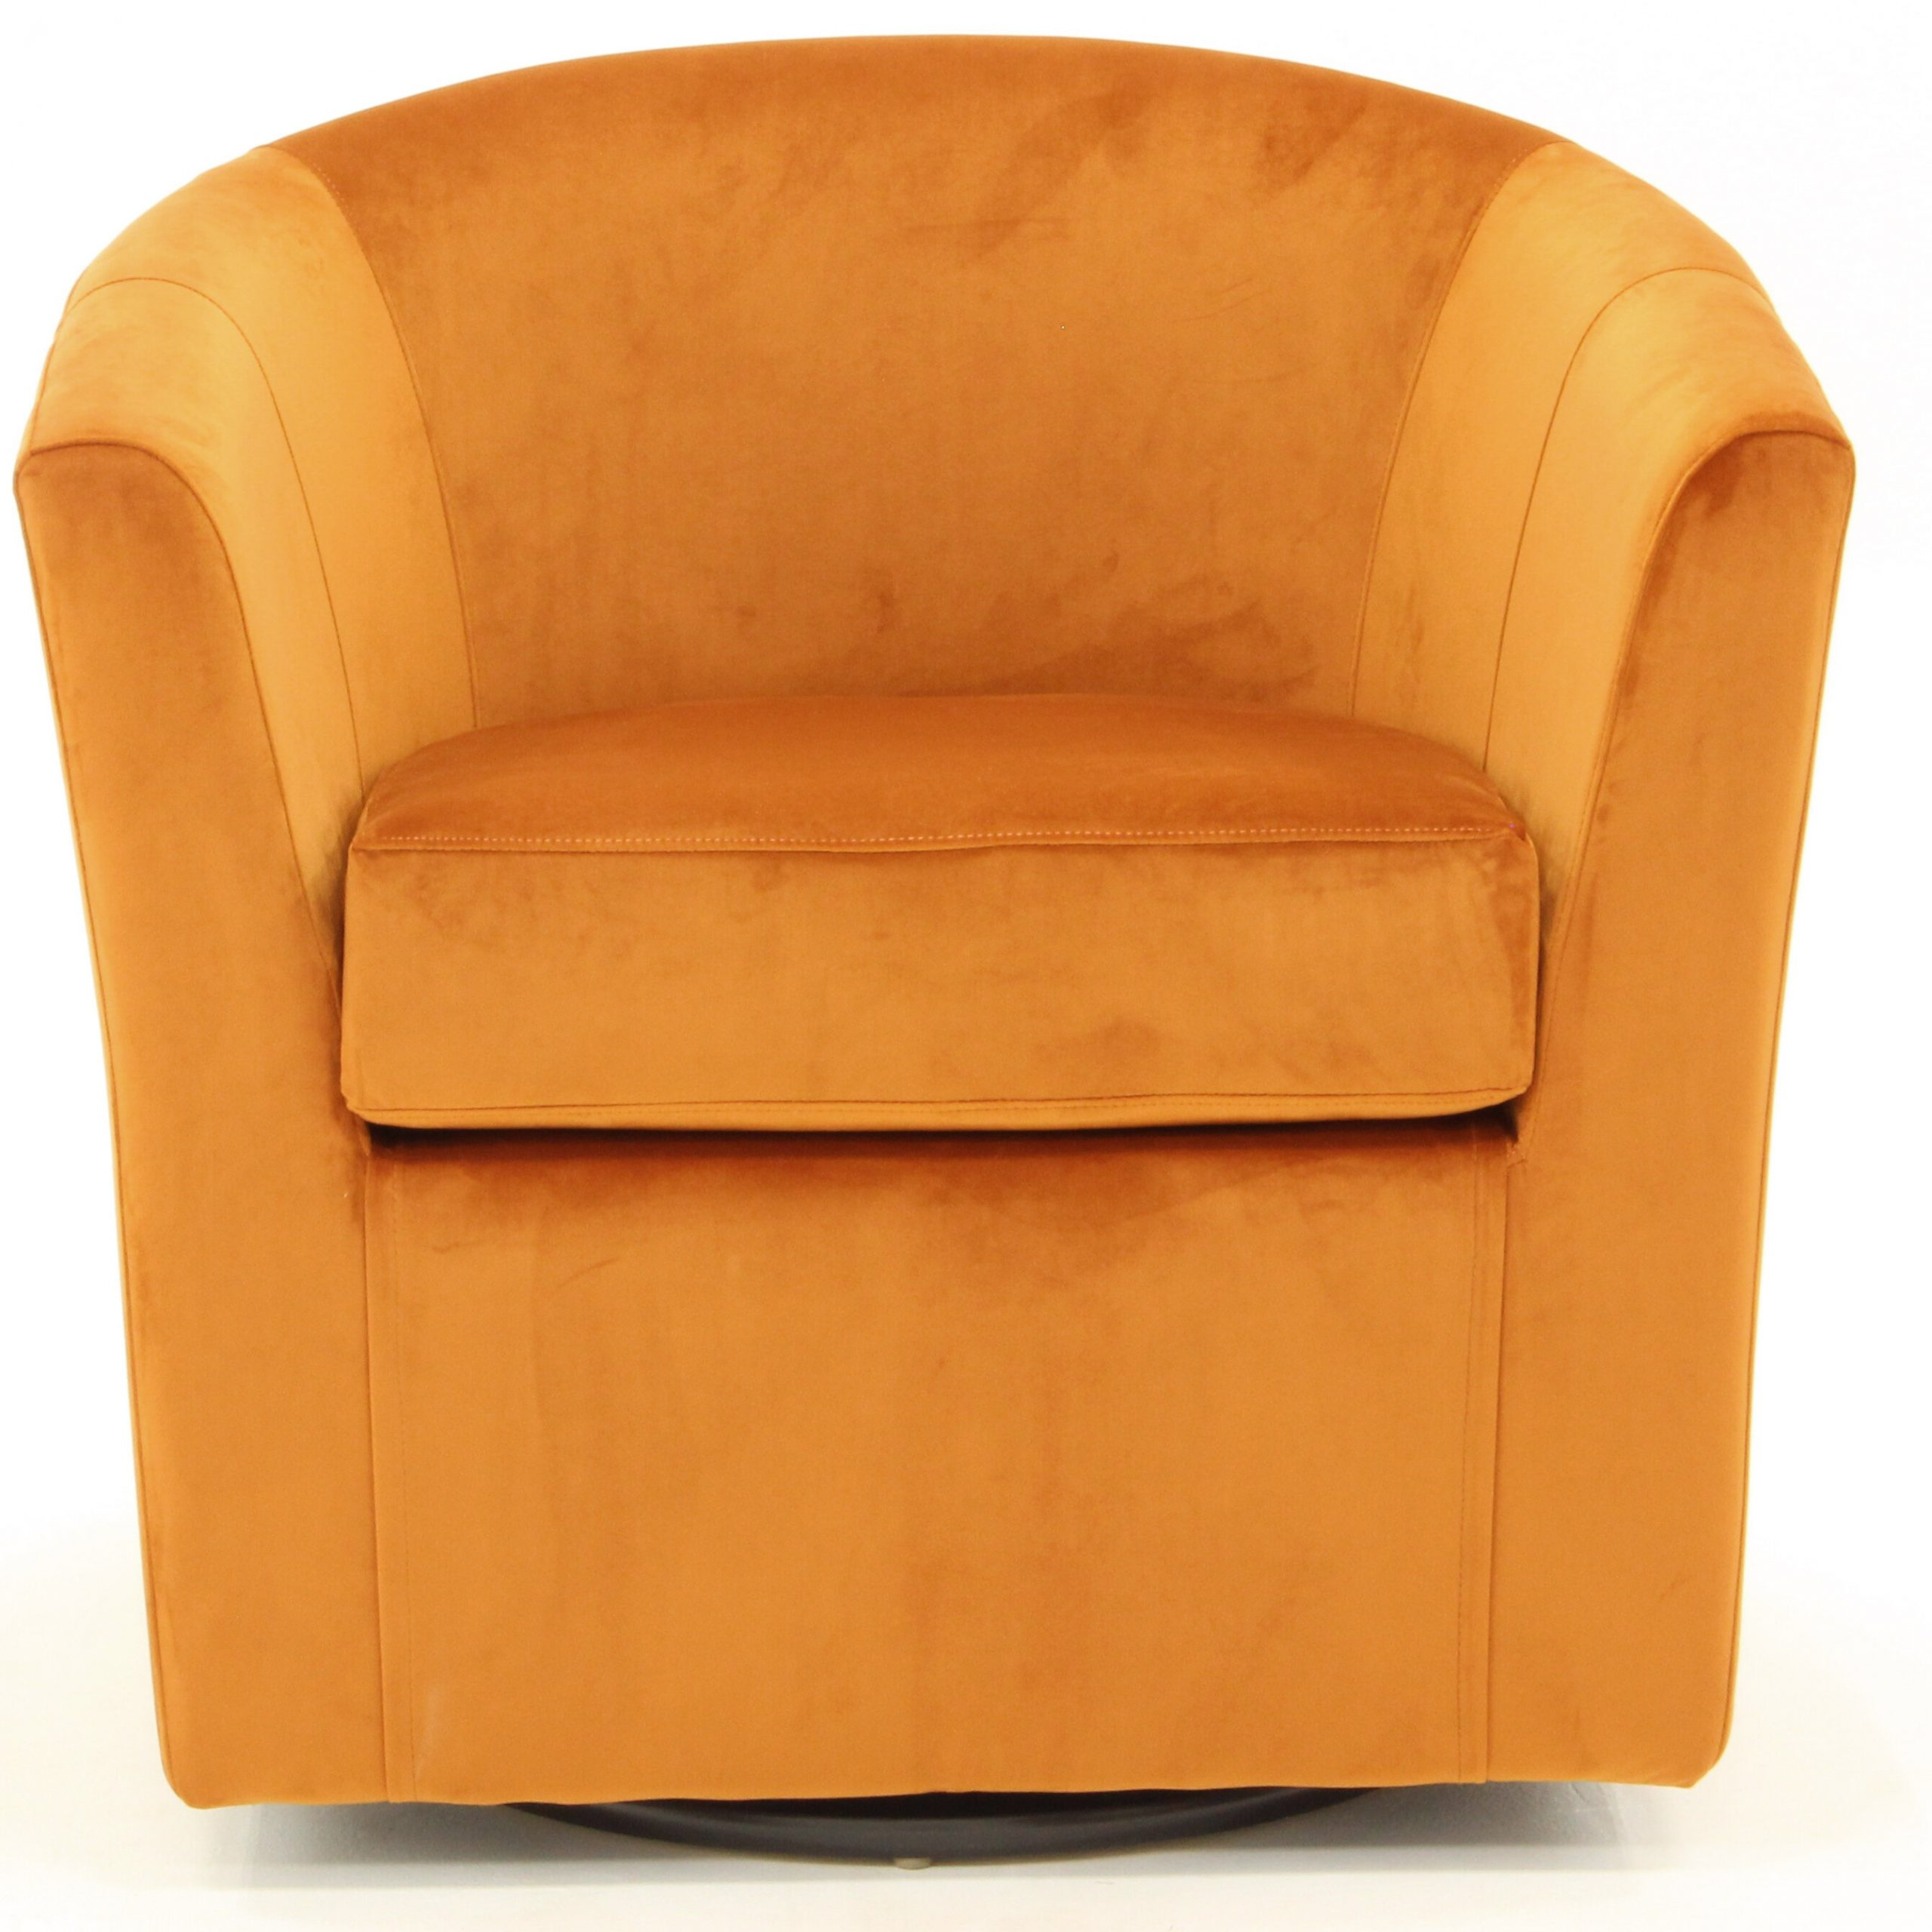 Orange Velvet Accent Chairs You'Ll Love In 2021 | Wayfair Inside Dorcaster Barrel Chairs (View 12 of 15)